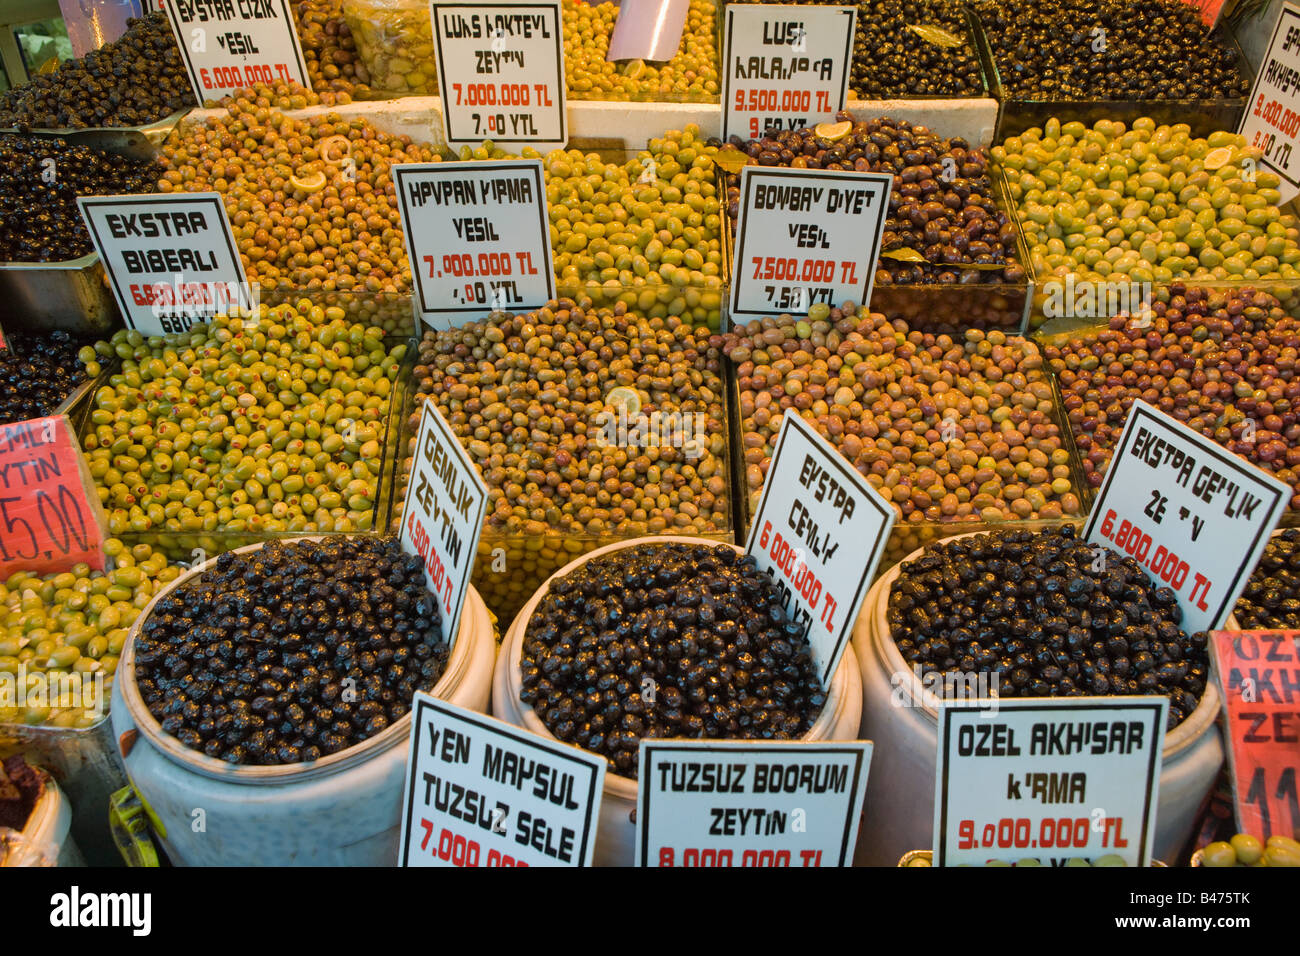 Olives at spice bazaar - Stock Image